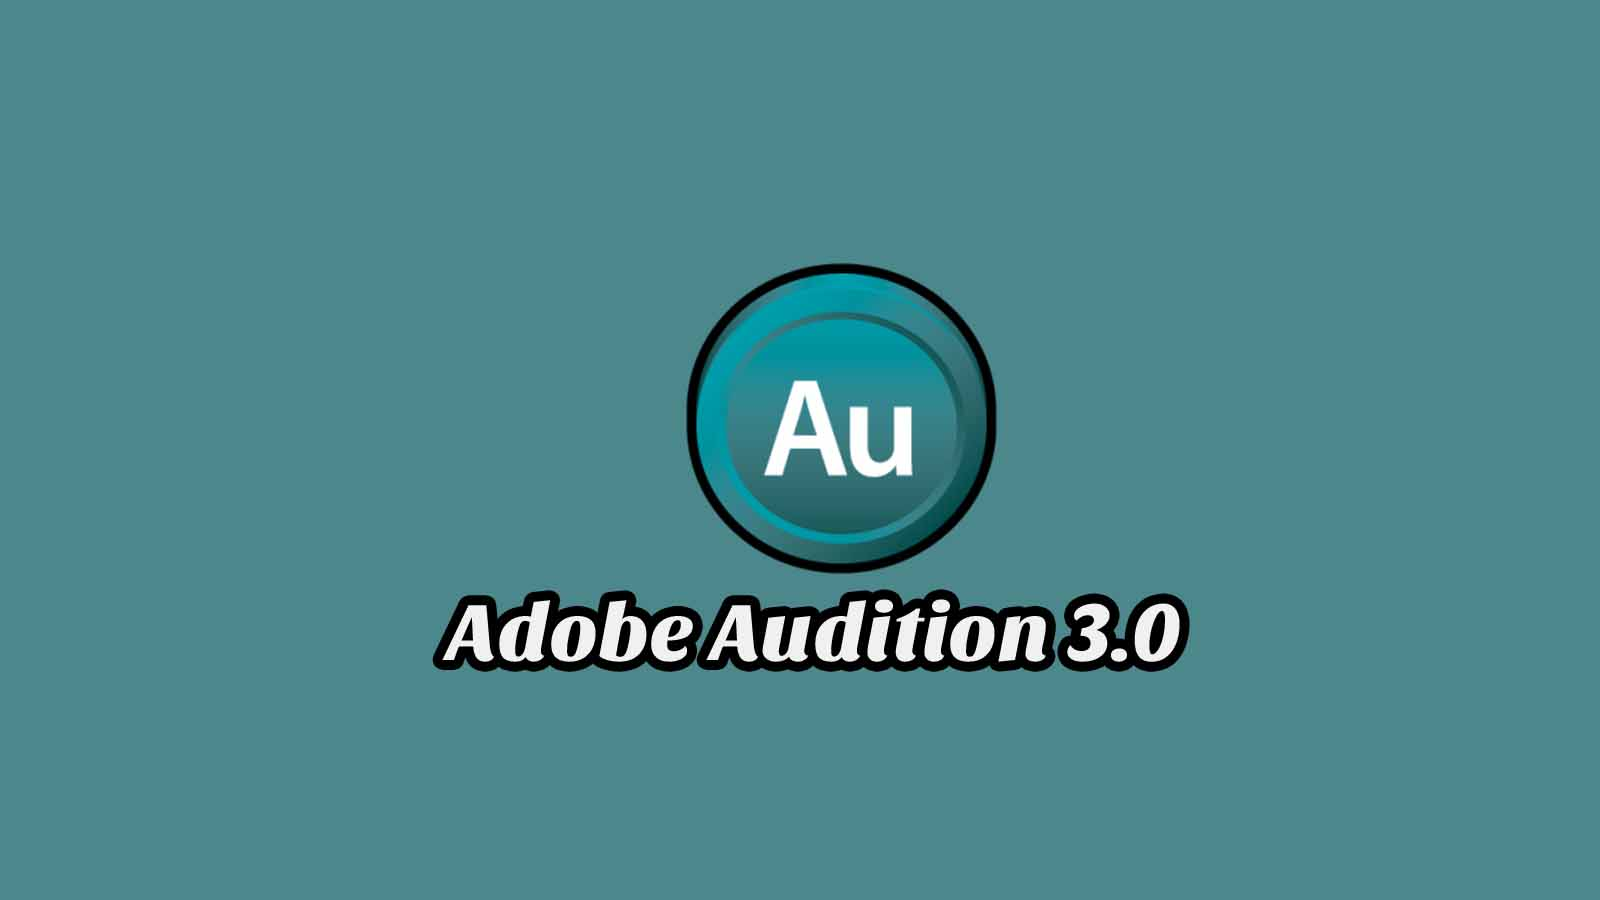 Daftar Isi Adobe Audition 3.0